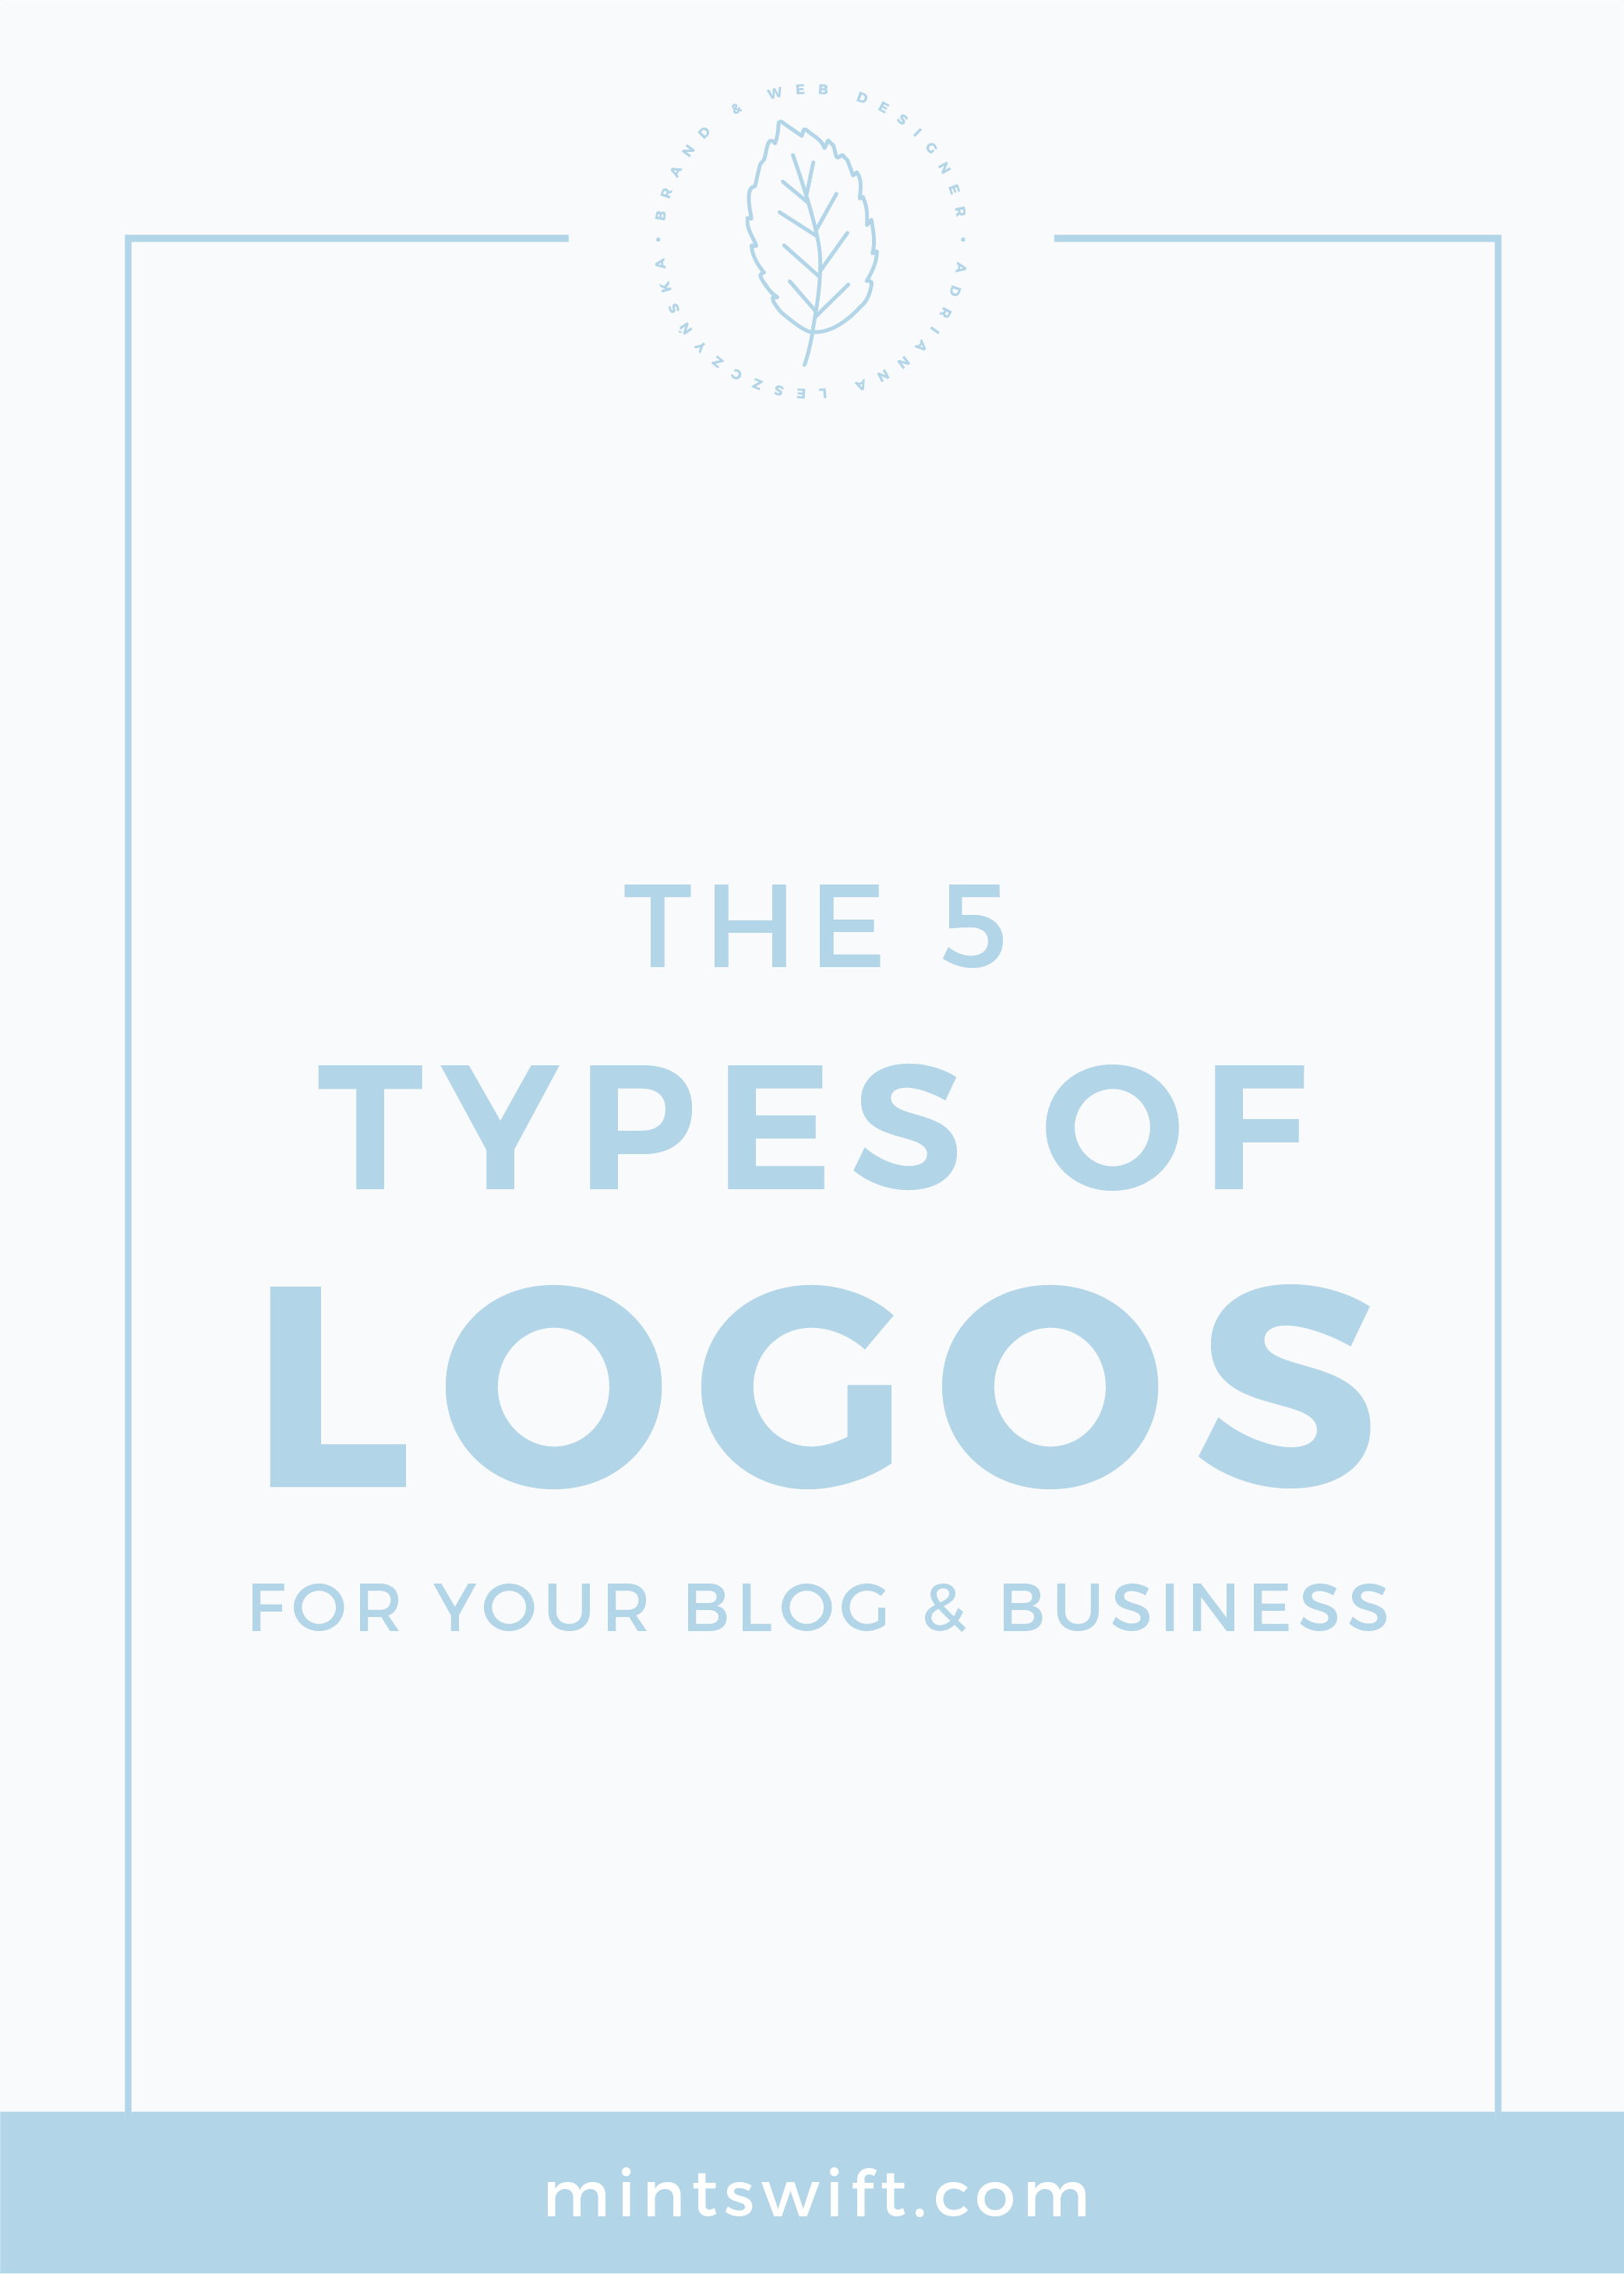 The 5 Types of Logos for Your Blog & Business MintSwift